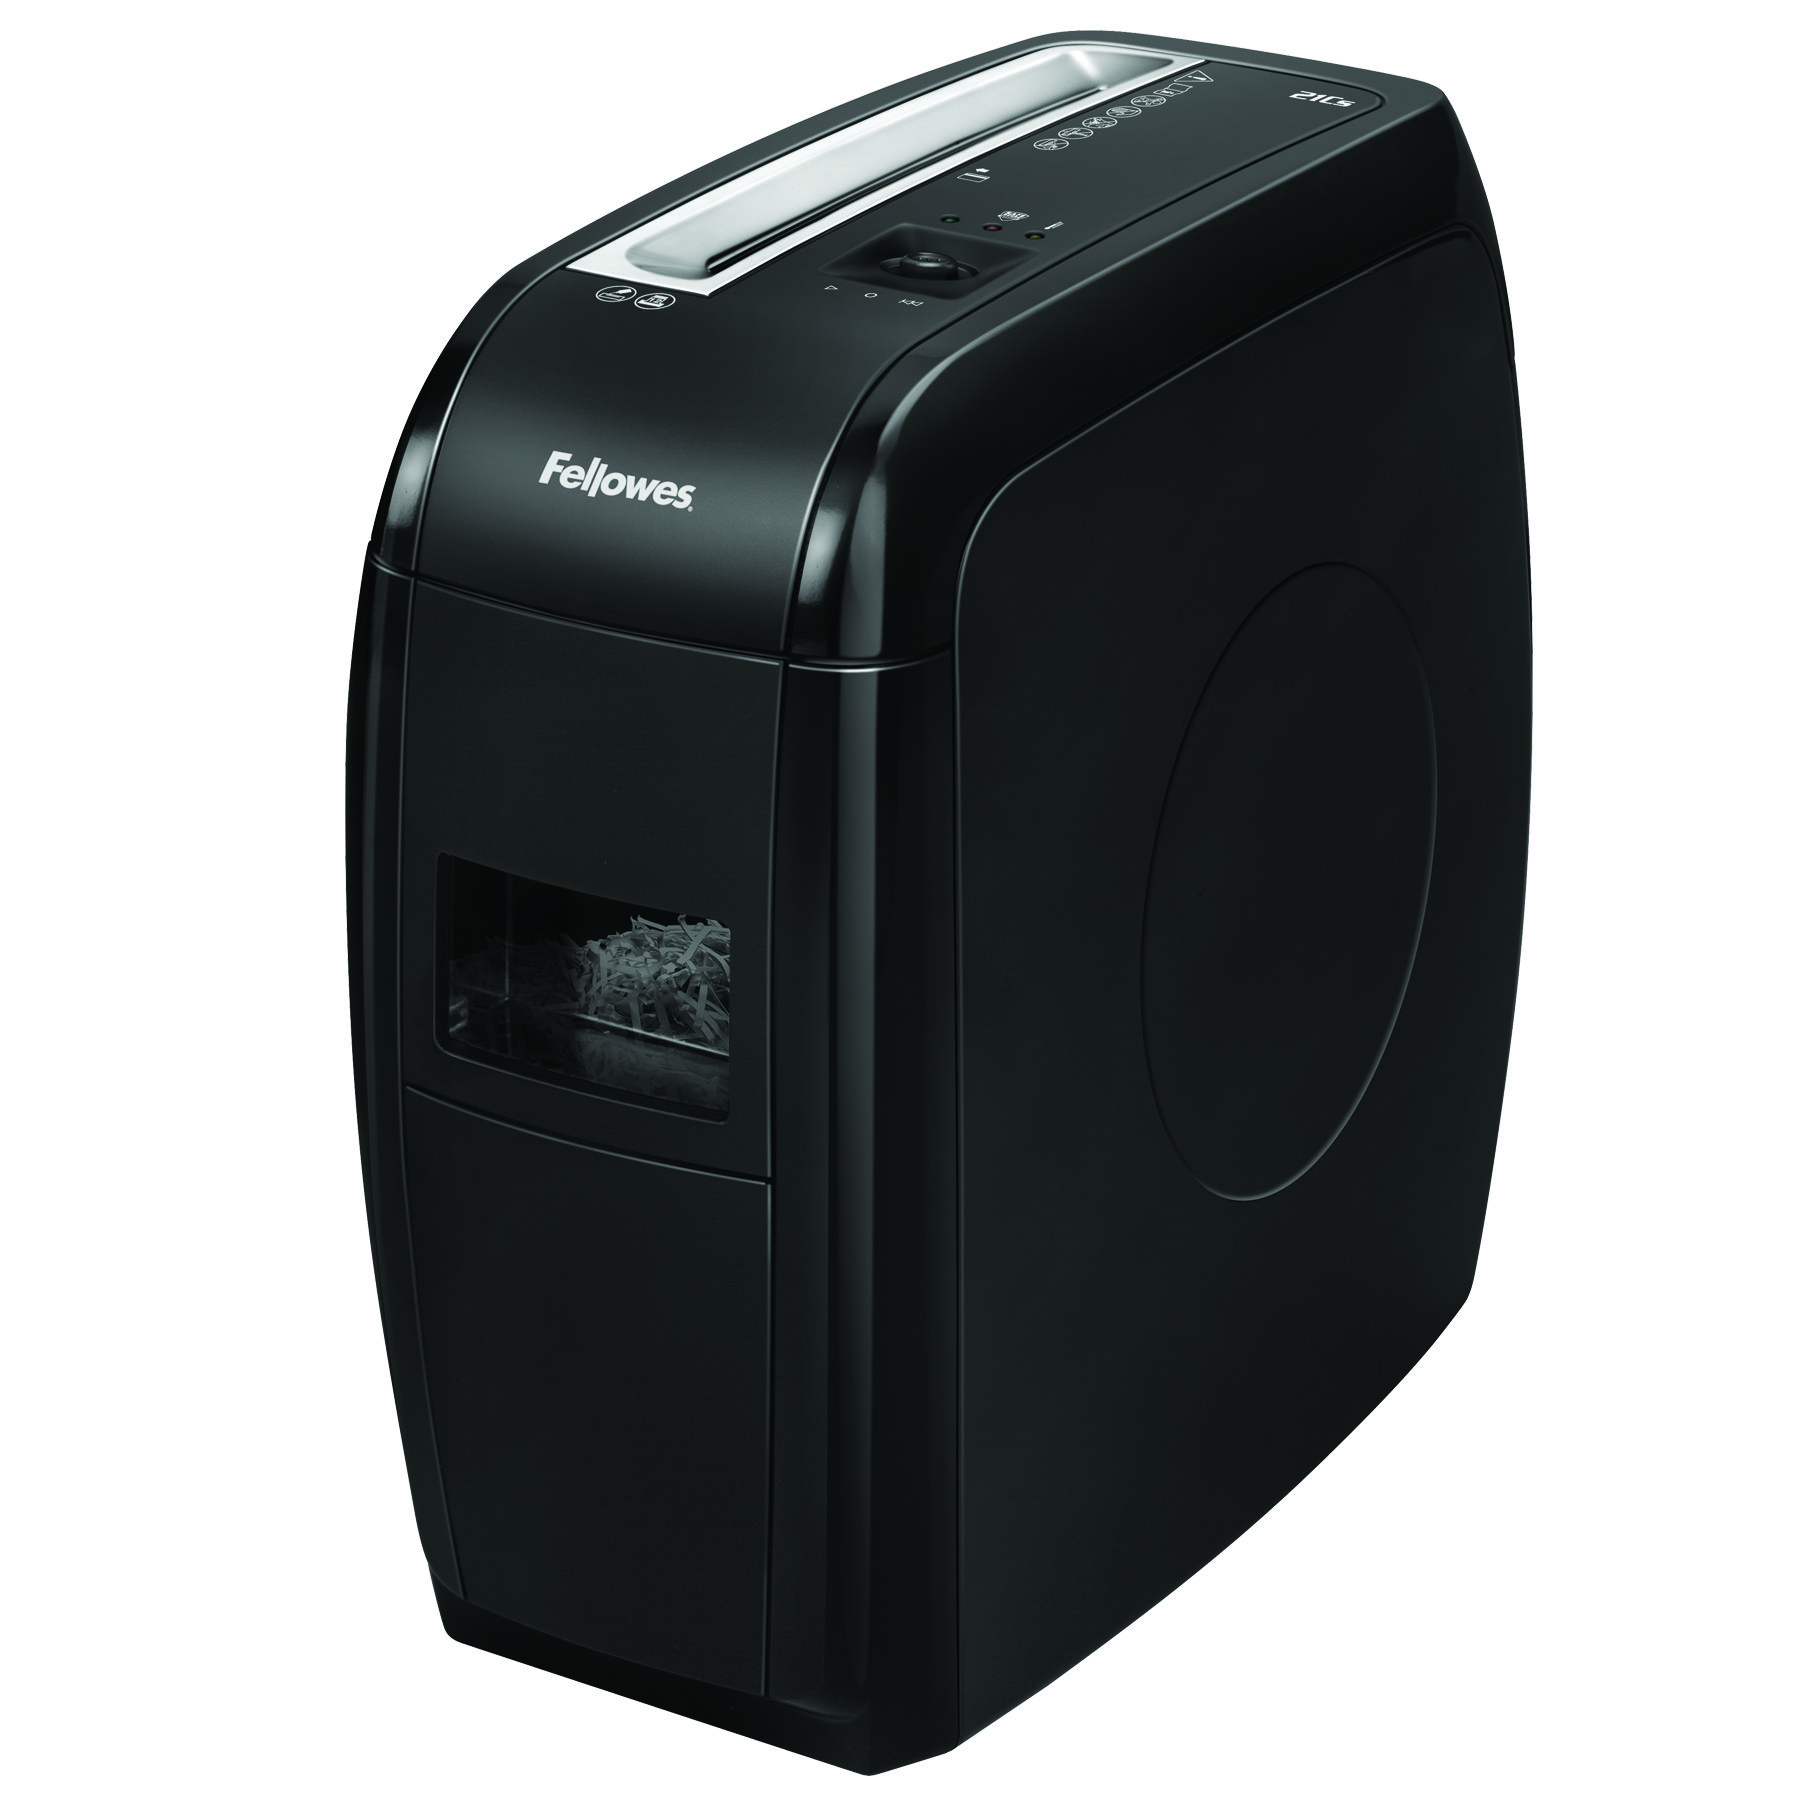 Shredders Fellowes 21Cs Cross Cut Shredder